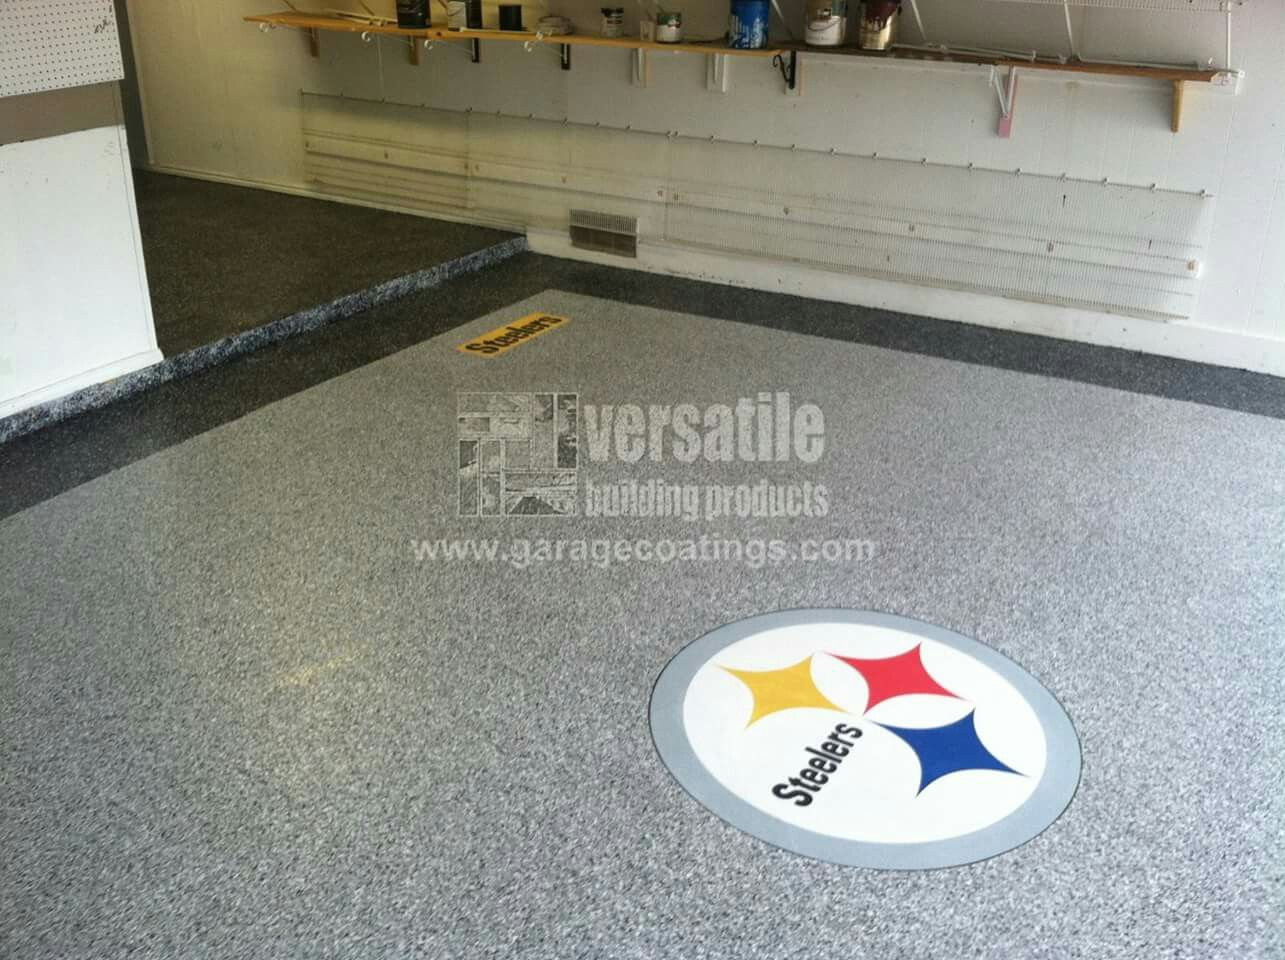 garage #renovation completed using #epoxyflooring and the